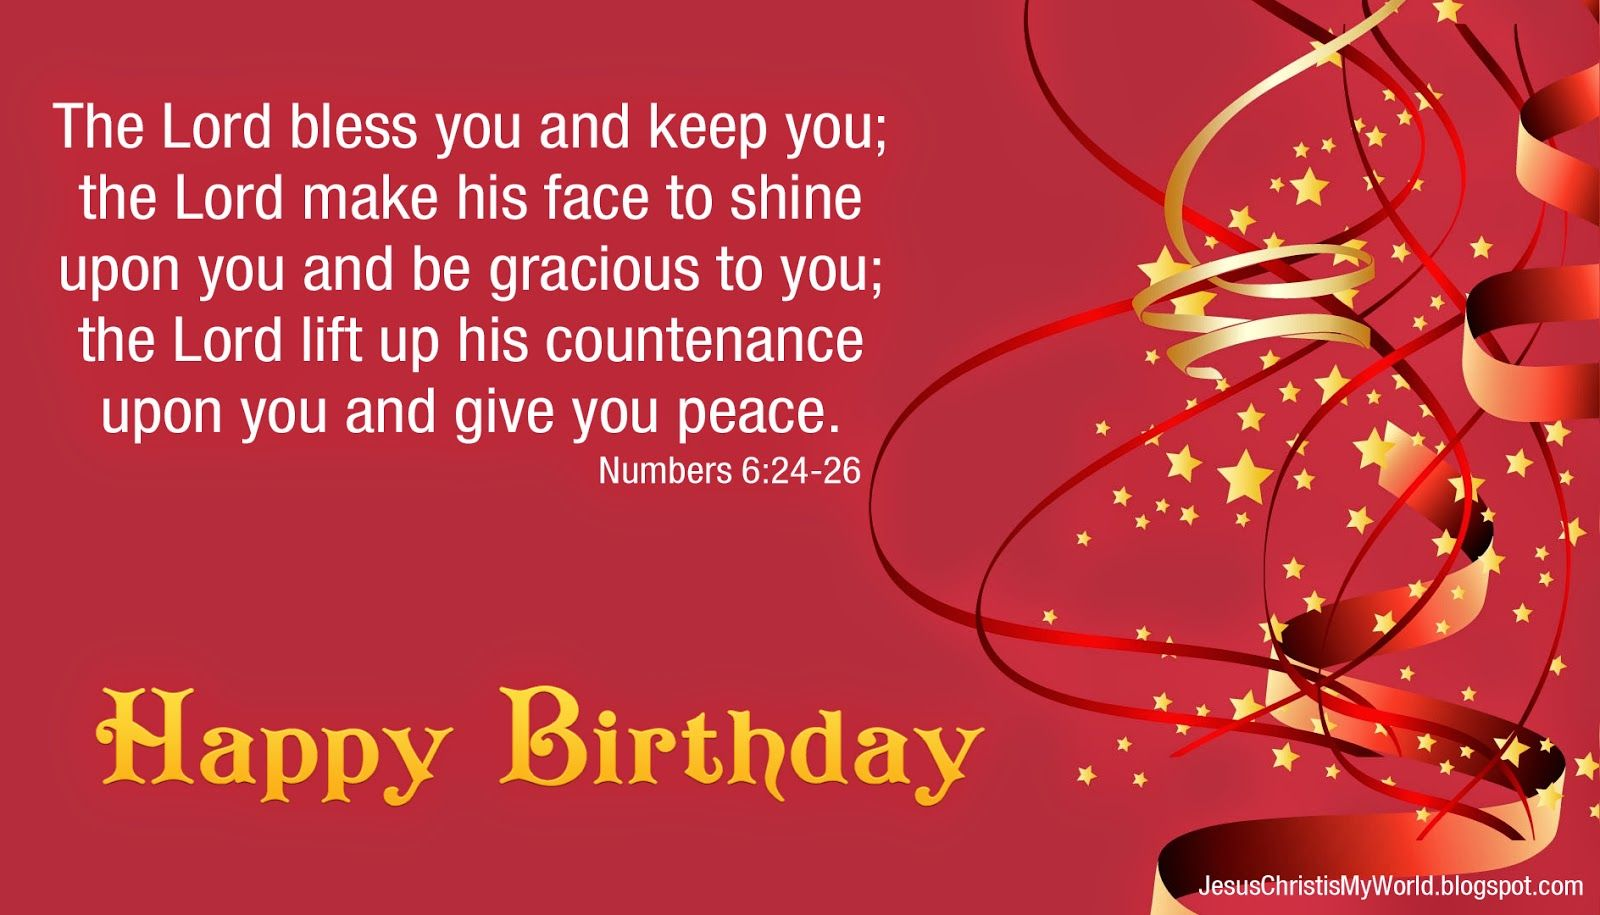 bible message for birthday wishes ; 52936c2d8e6eb6880ea8f53c6bb73b8d